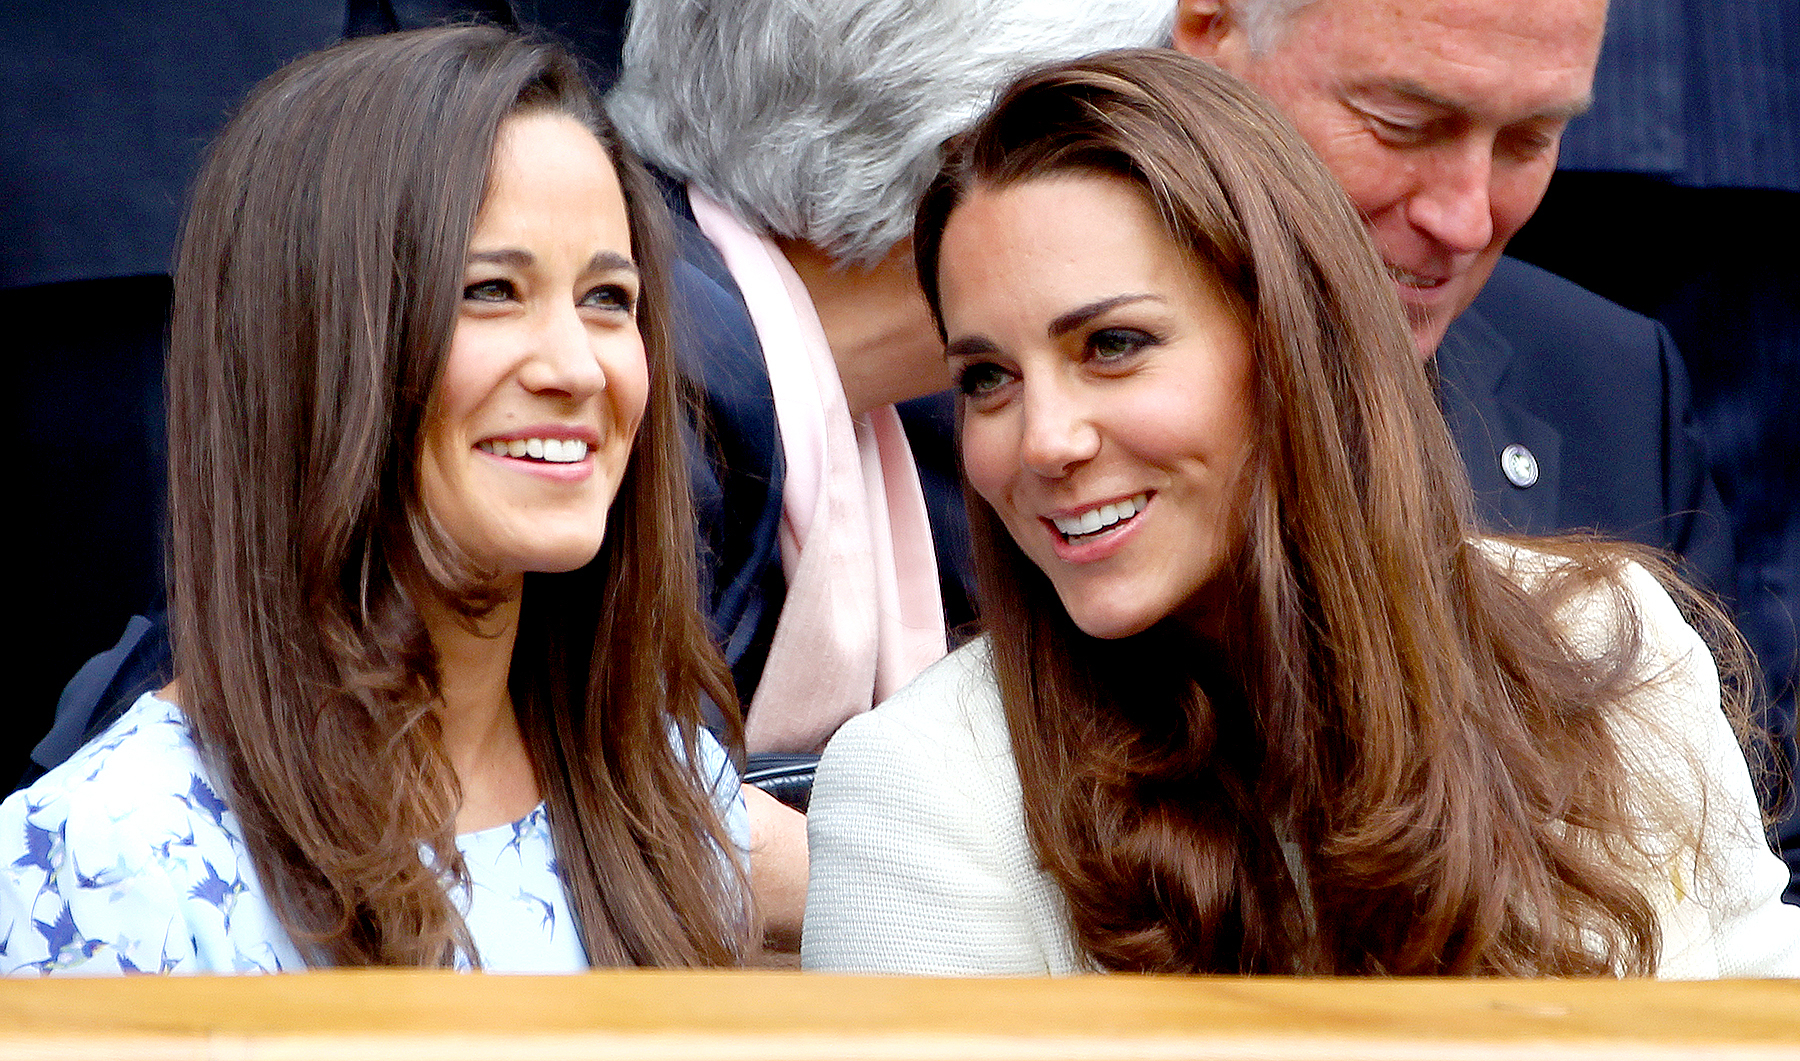 Pippa Middleton and Duchess Kate attend the Gentlemen's Singles final match at the Wimbledon Lawn Tennis Championships at the All England Lawn Tennis and Croquet Club in London on July 8, 2012.